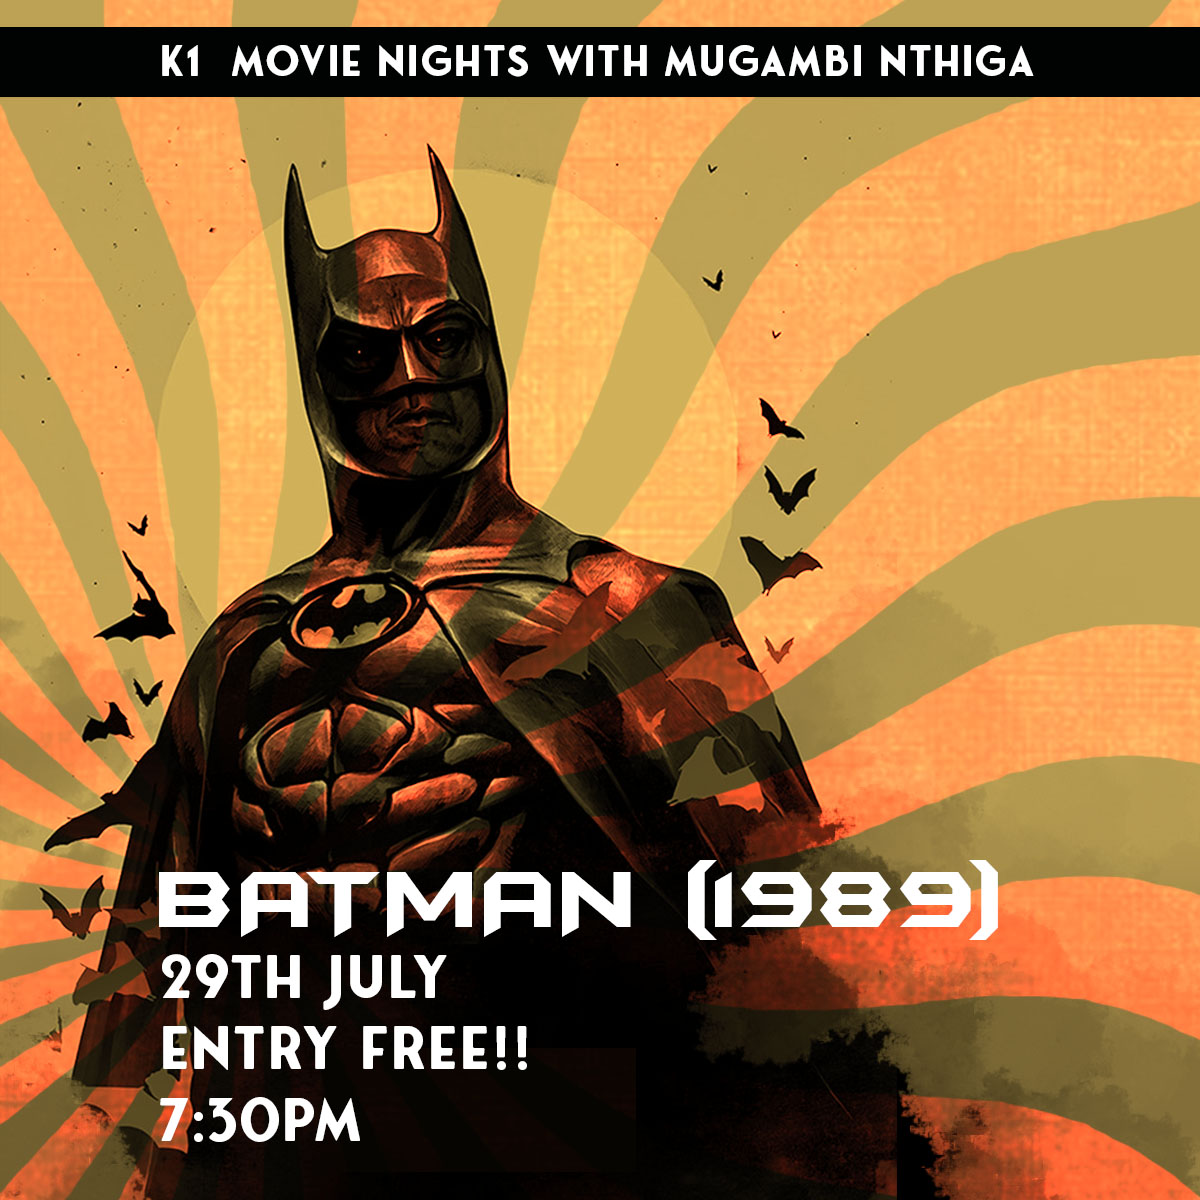 Movie Night: Batman (1989) hosted by Mugambi Nthiga